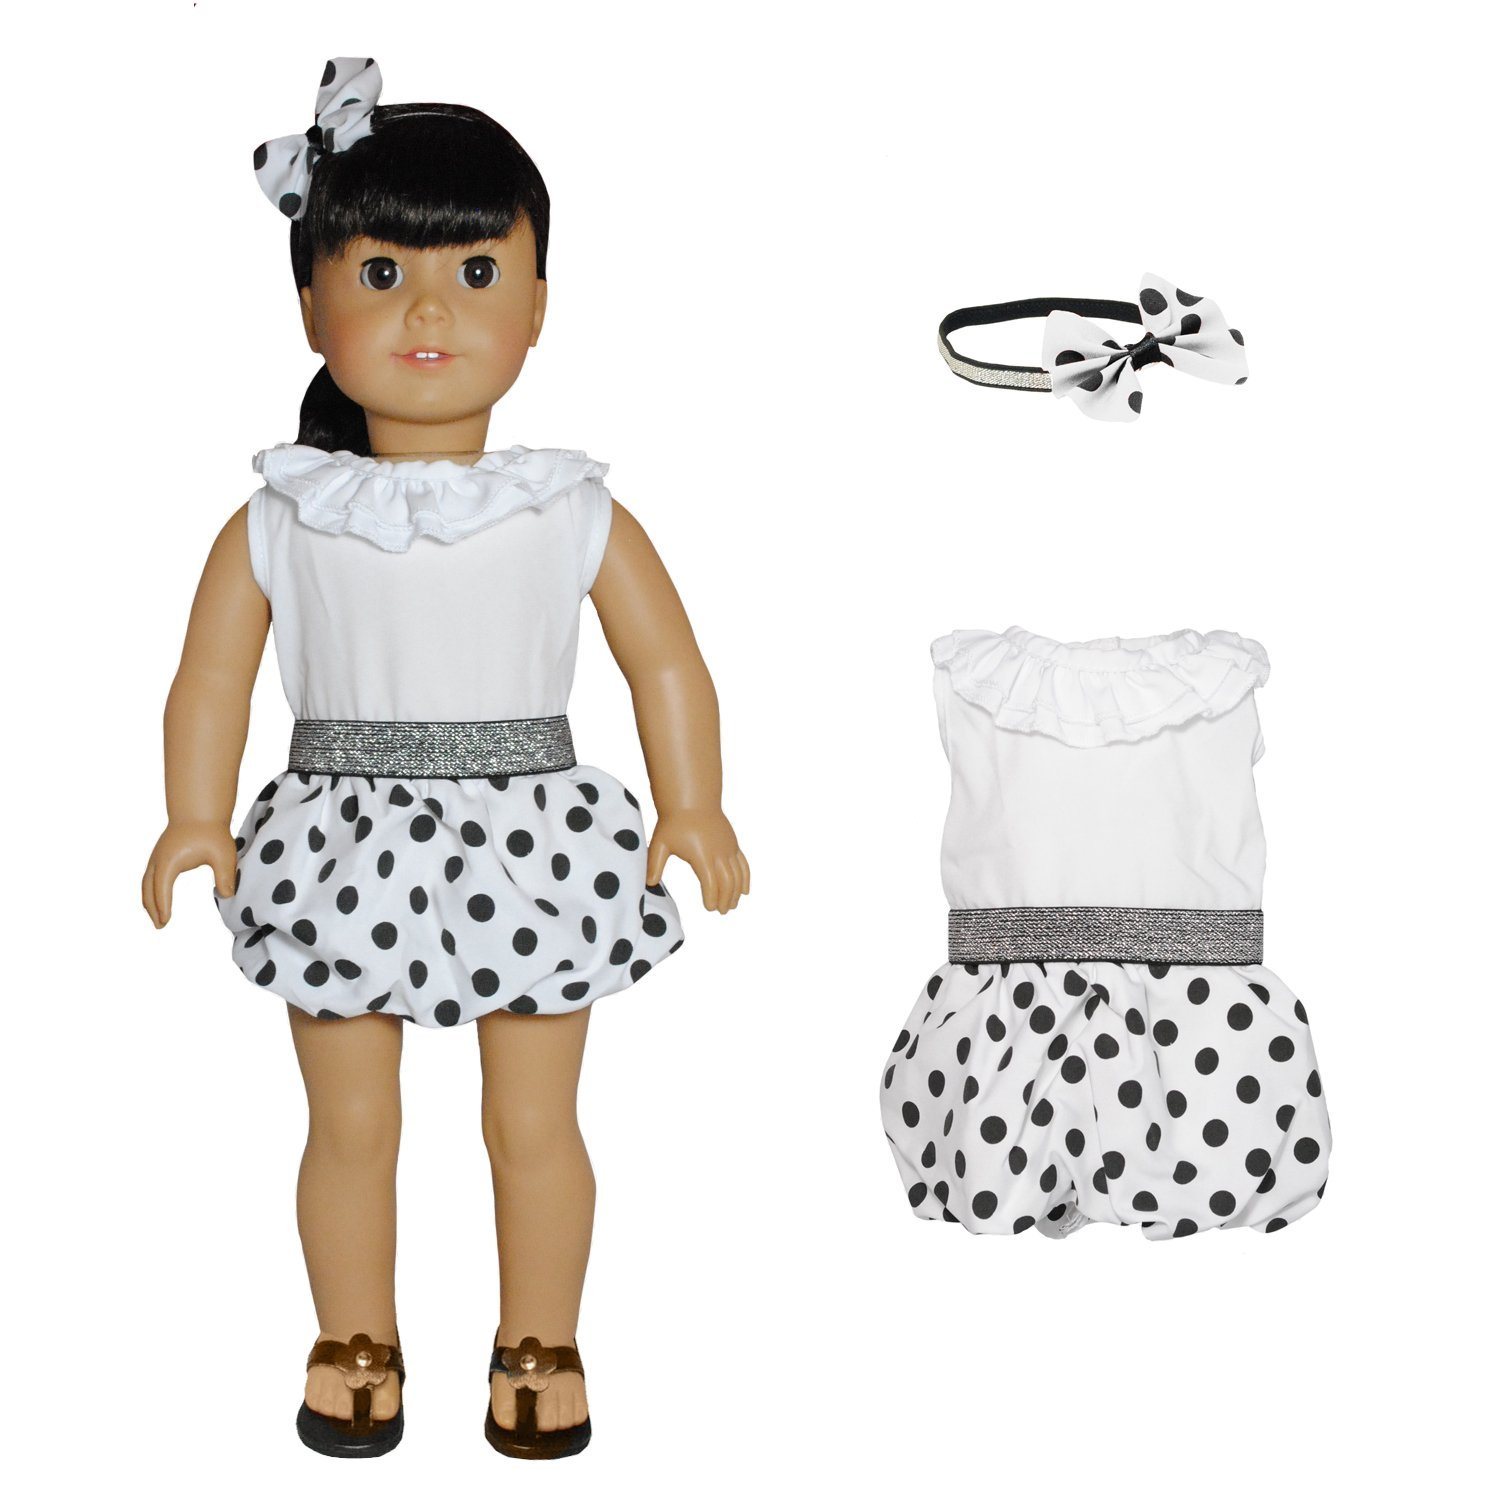 Doll Clothes Polka Dots Outfit Fits American Girl Dolls, My Life Doll and other 18 inches... by Pink Butterfly Closet